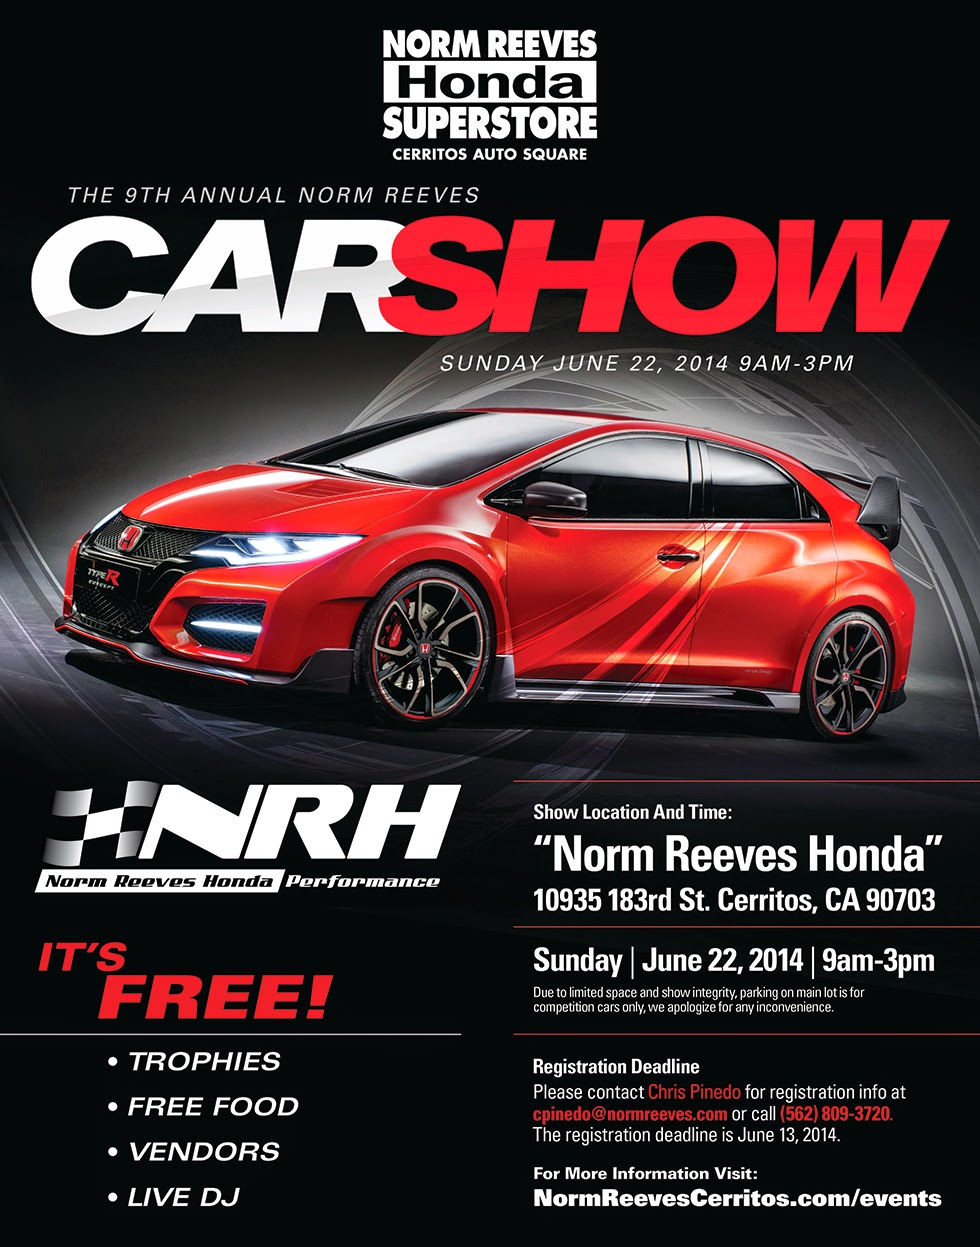 Service norm reeves honda cerritos autos post for Norm reeves honda superstore irvine